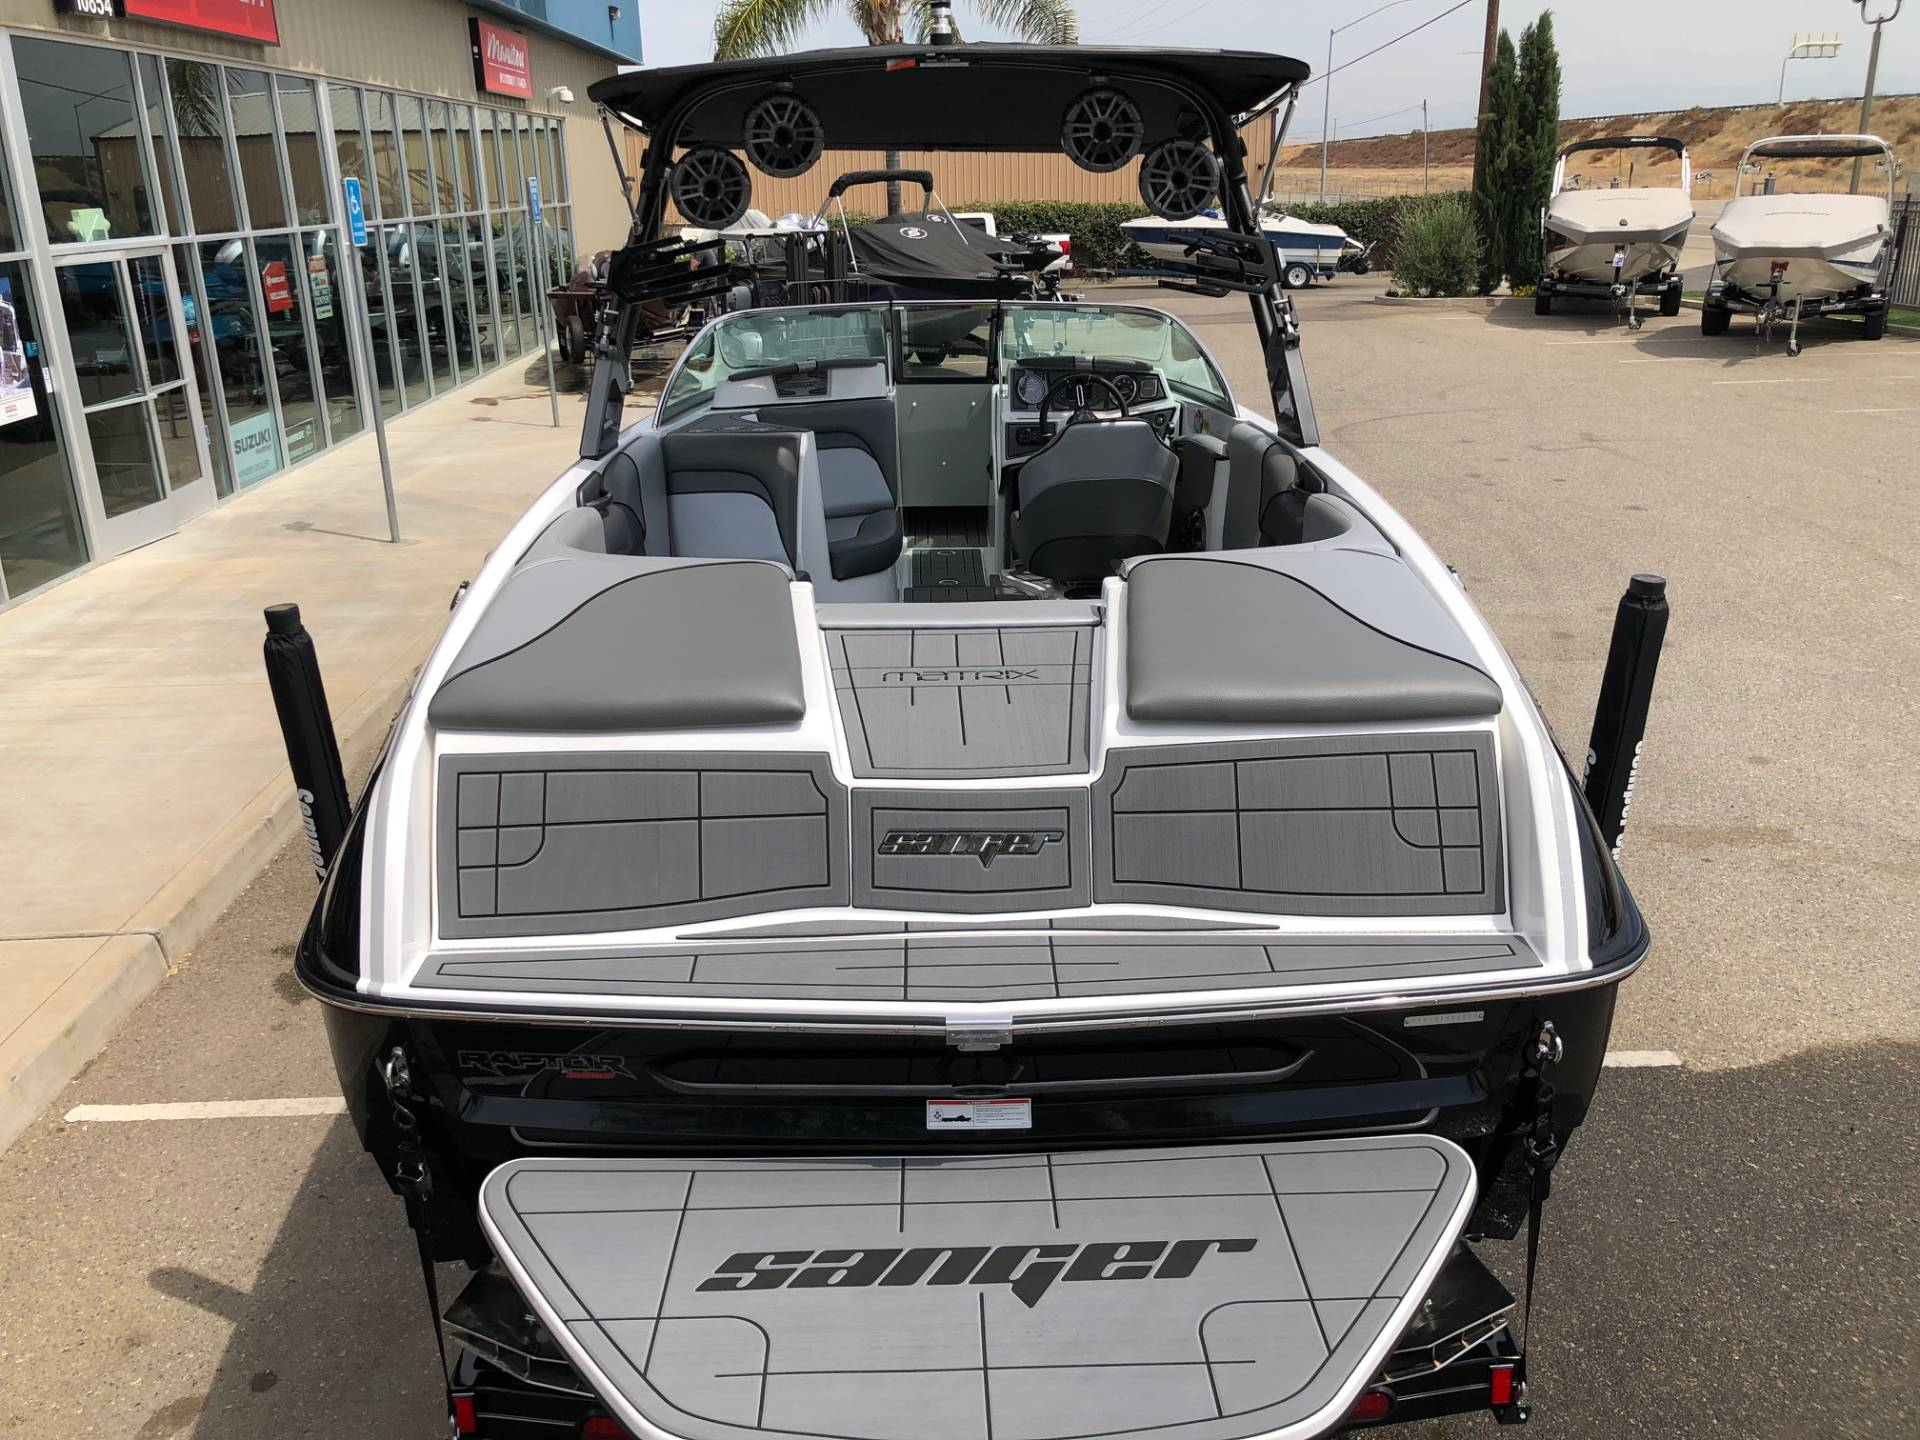 2020 Sanger Boats 231 SLE in Madera, California - Photo 6